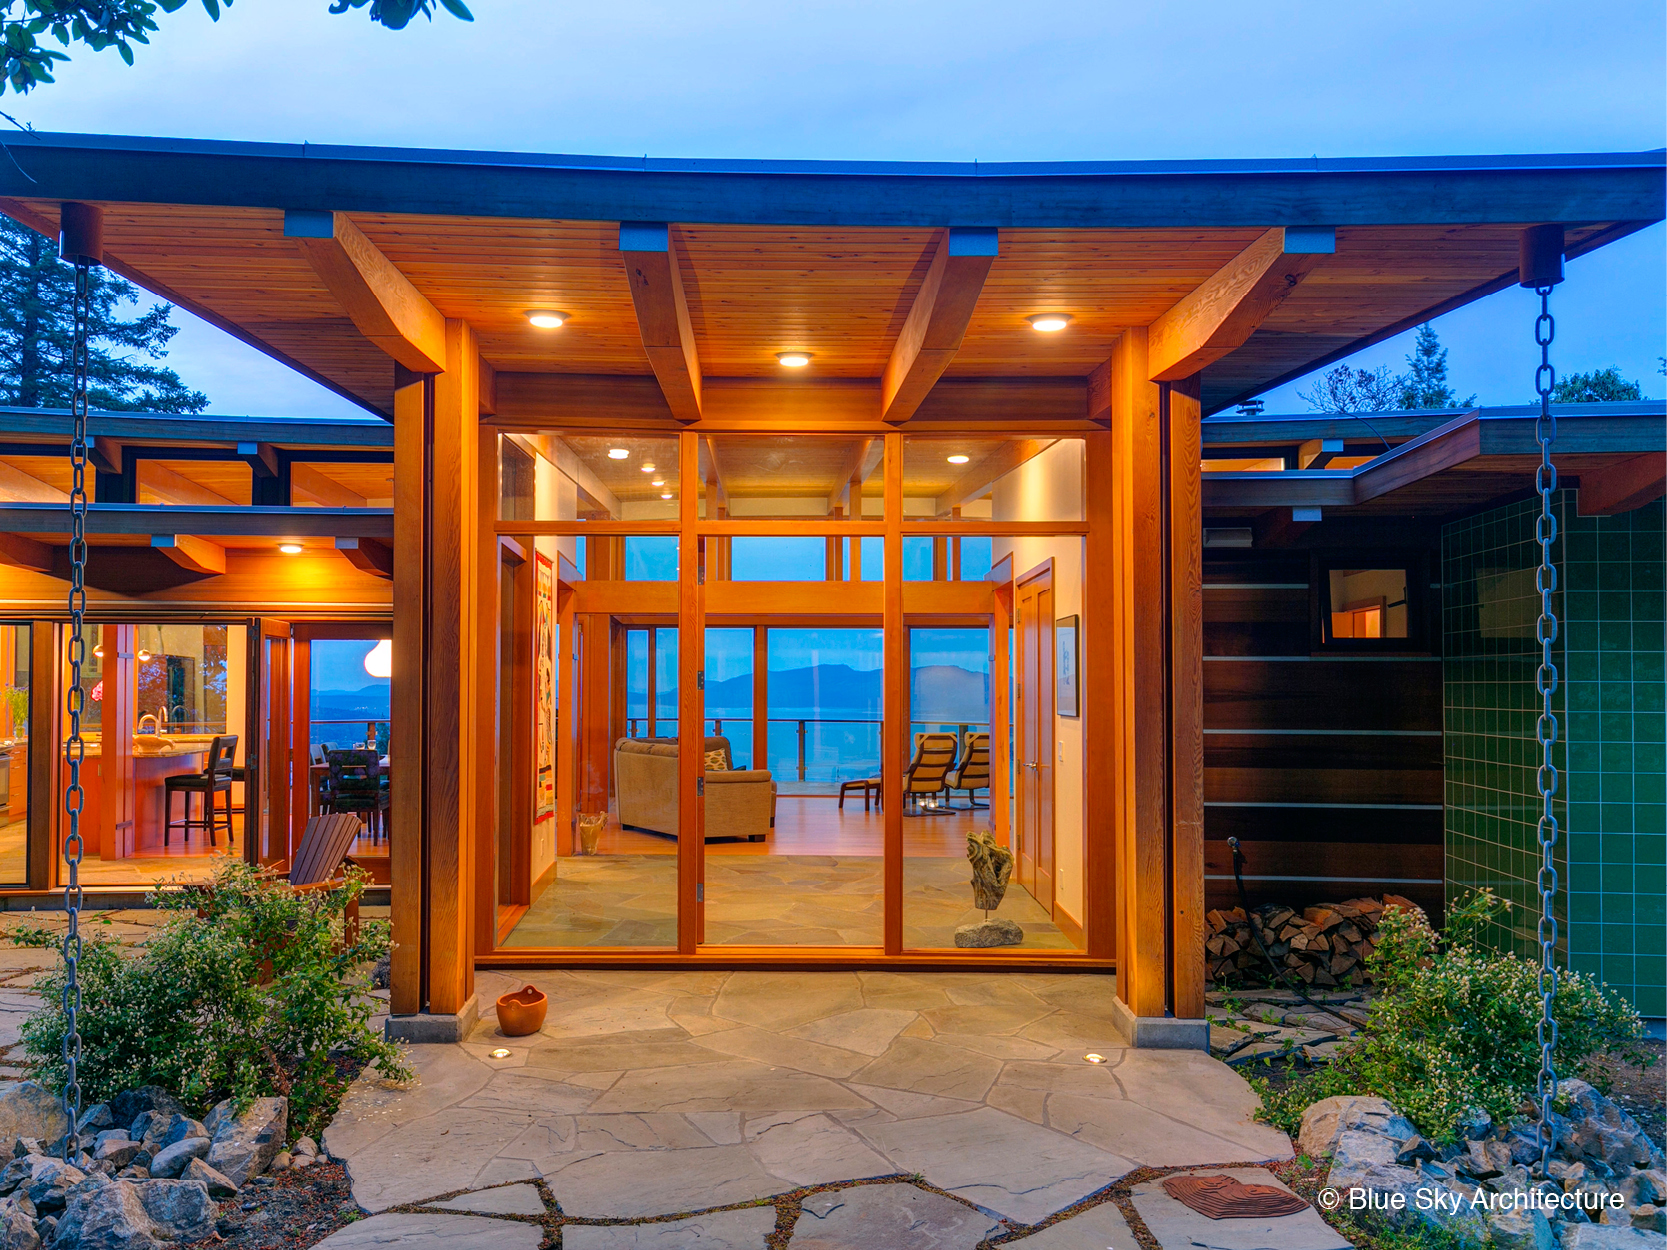 Island residential architecture with heavy timber entryway